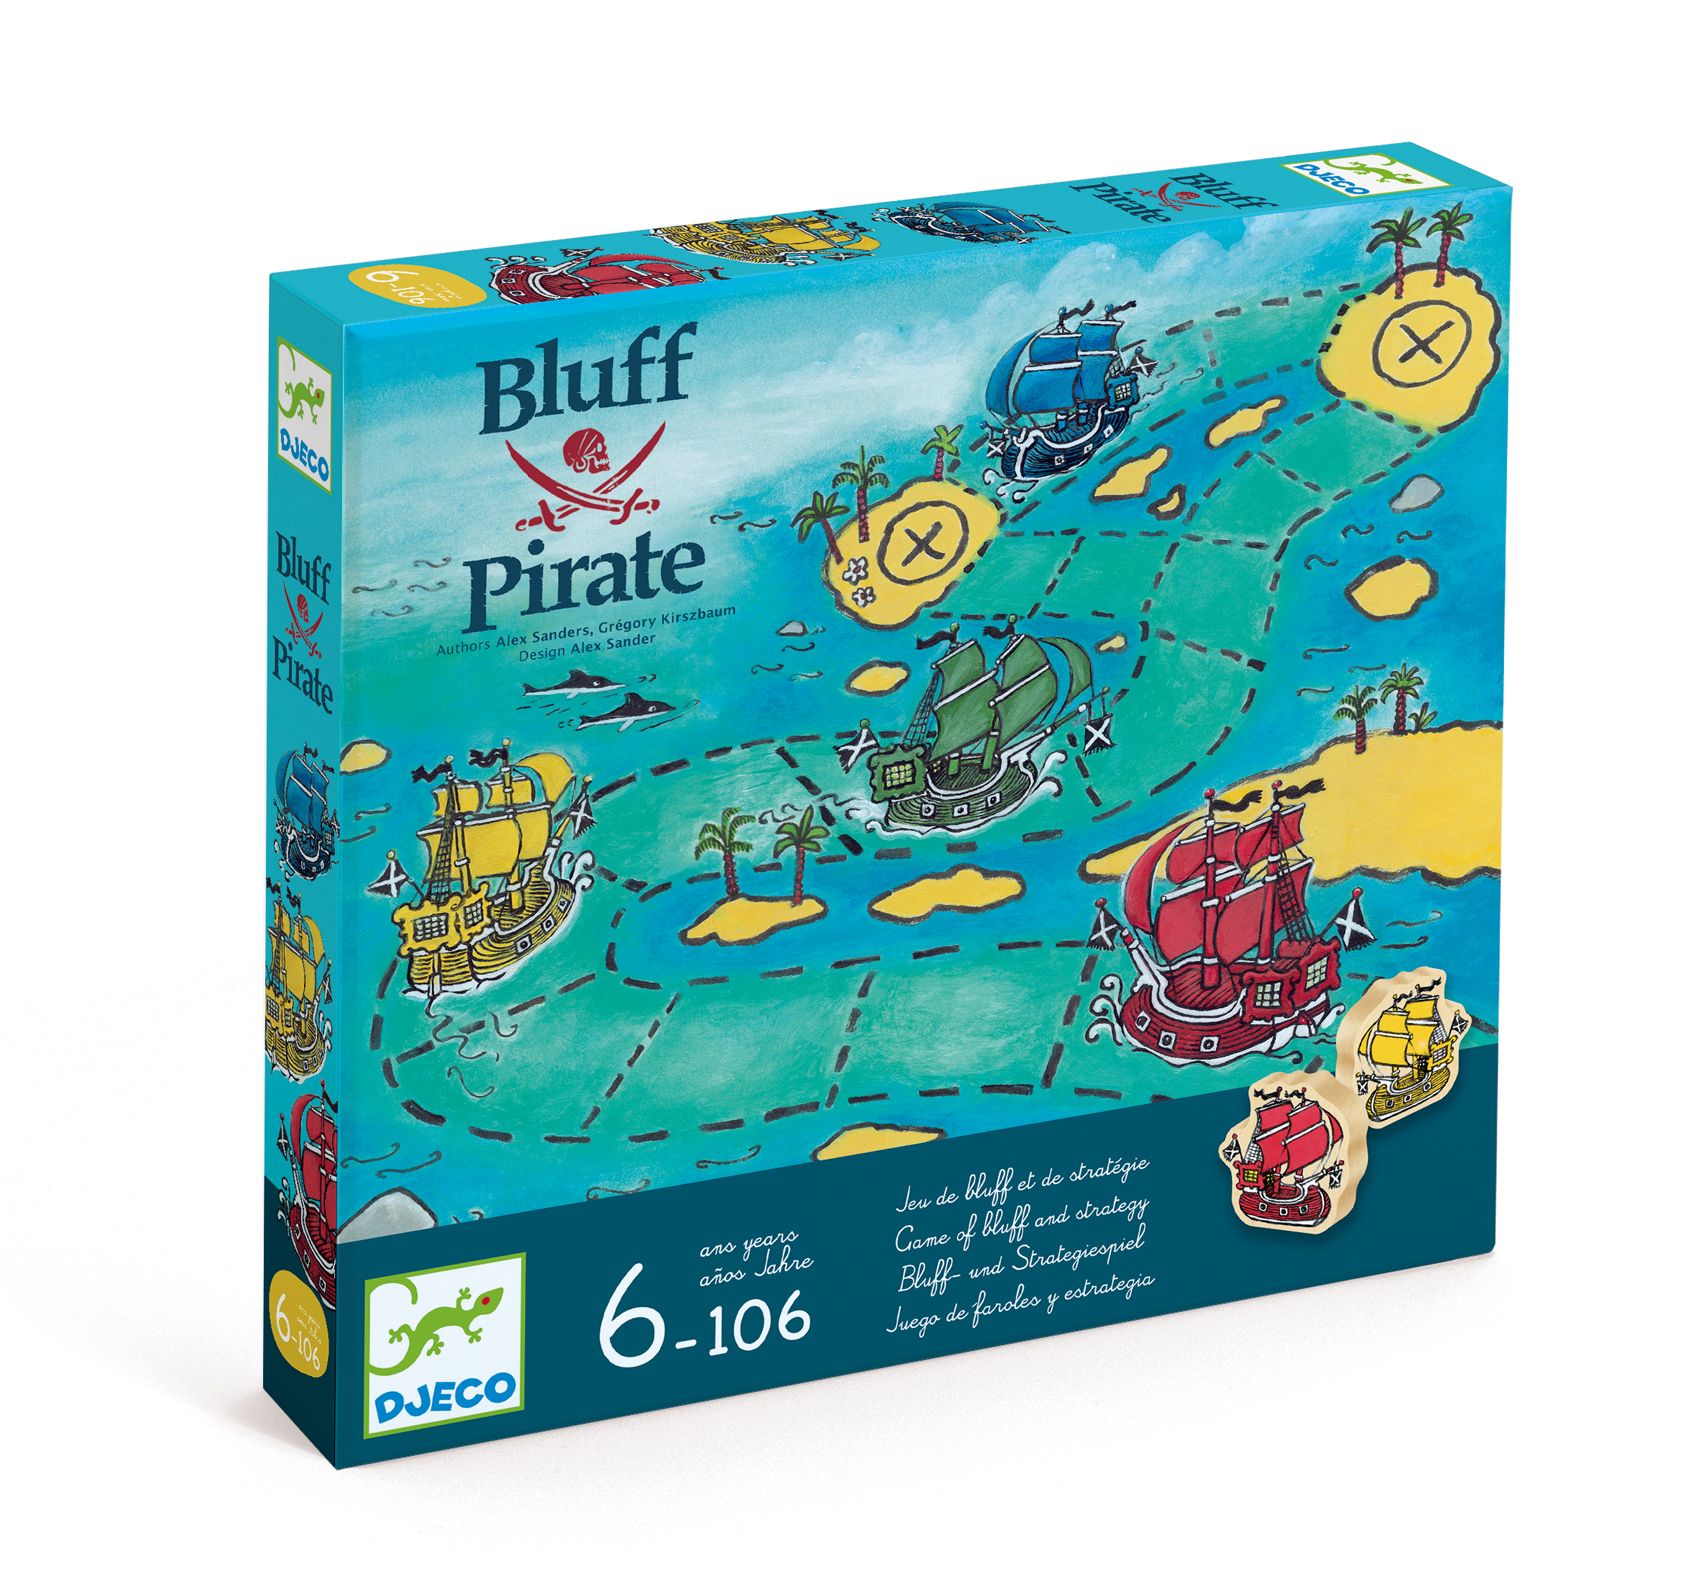 Bluff Pirate Djeco